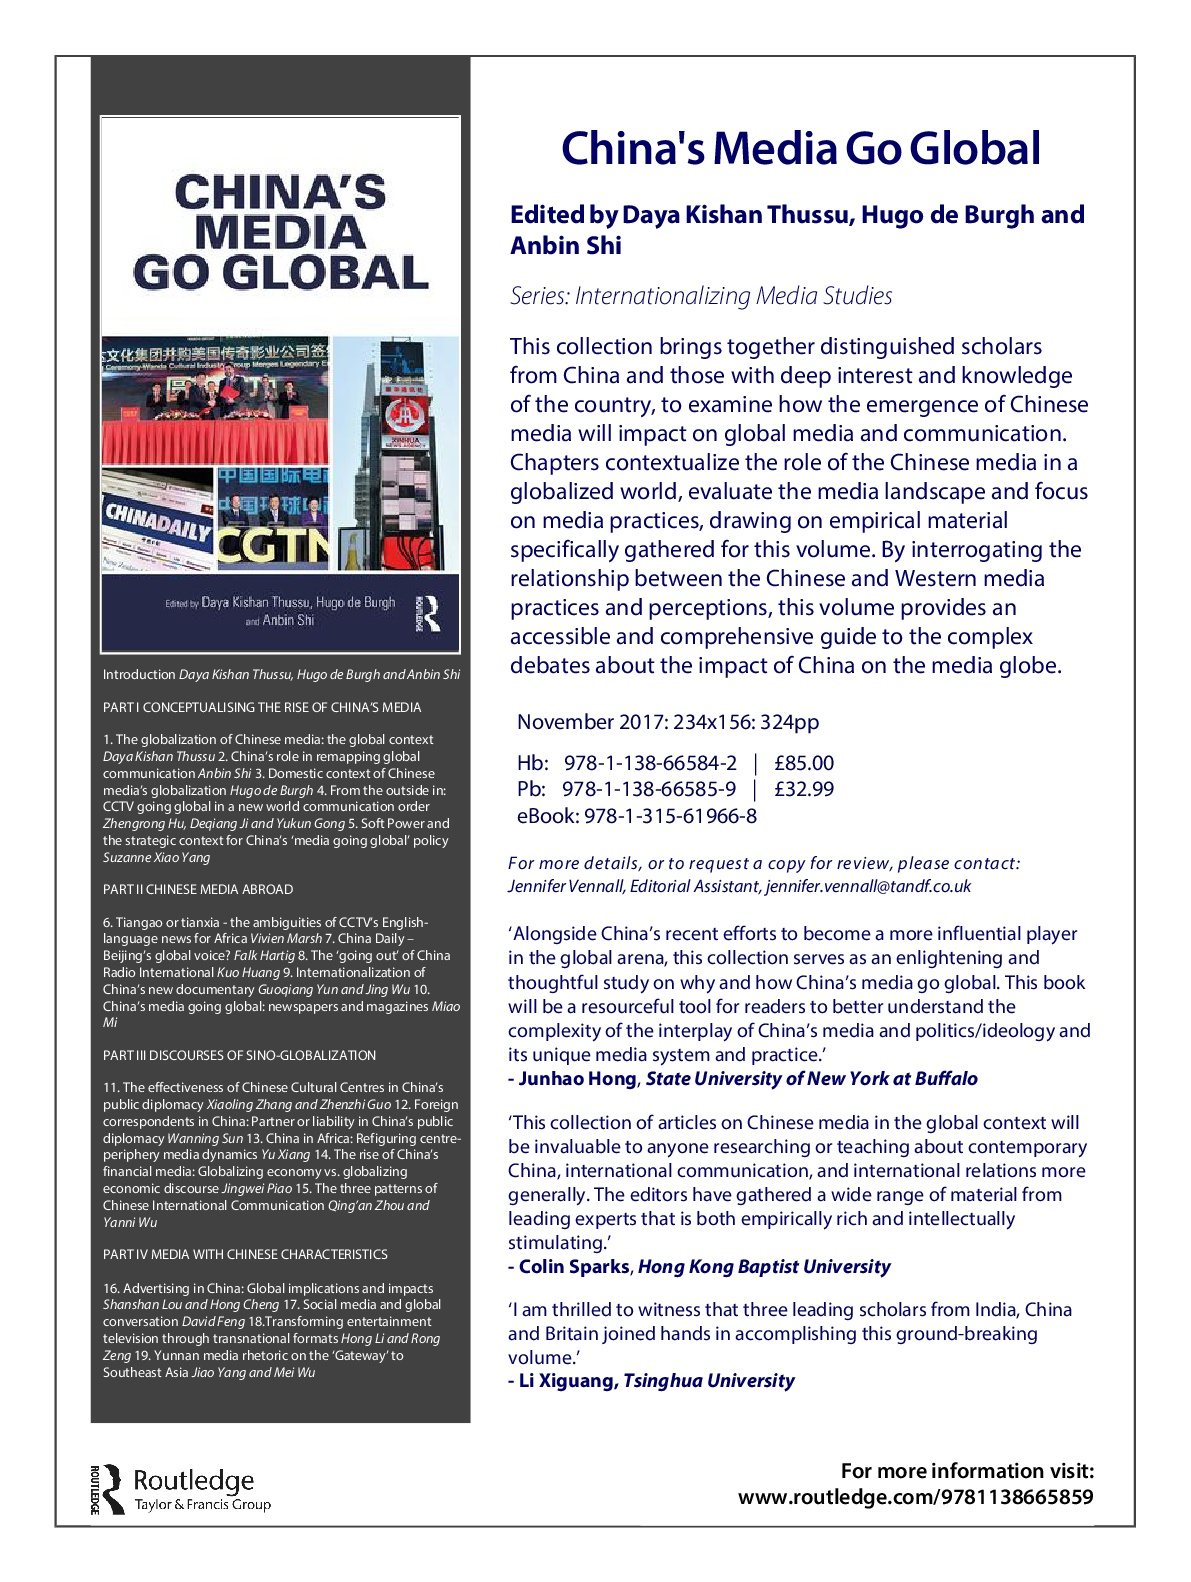 News from AMIC Partners: 'China's Media Go Global' now available.